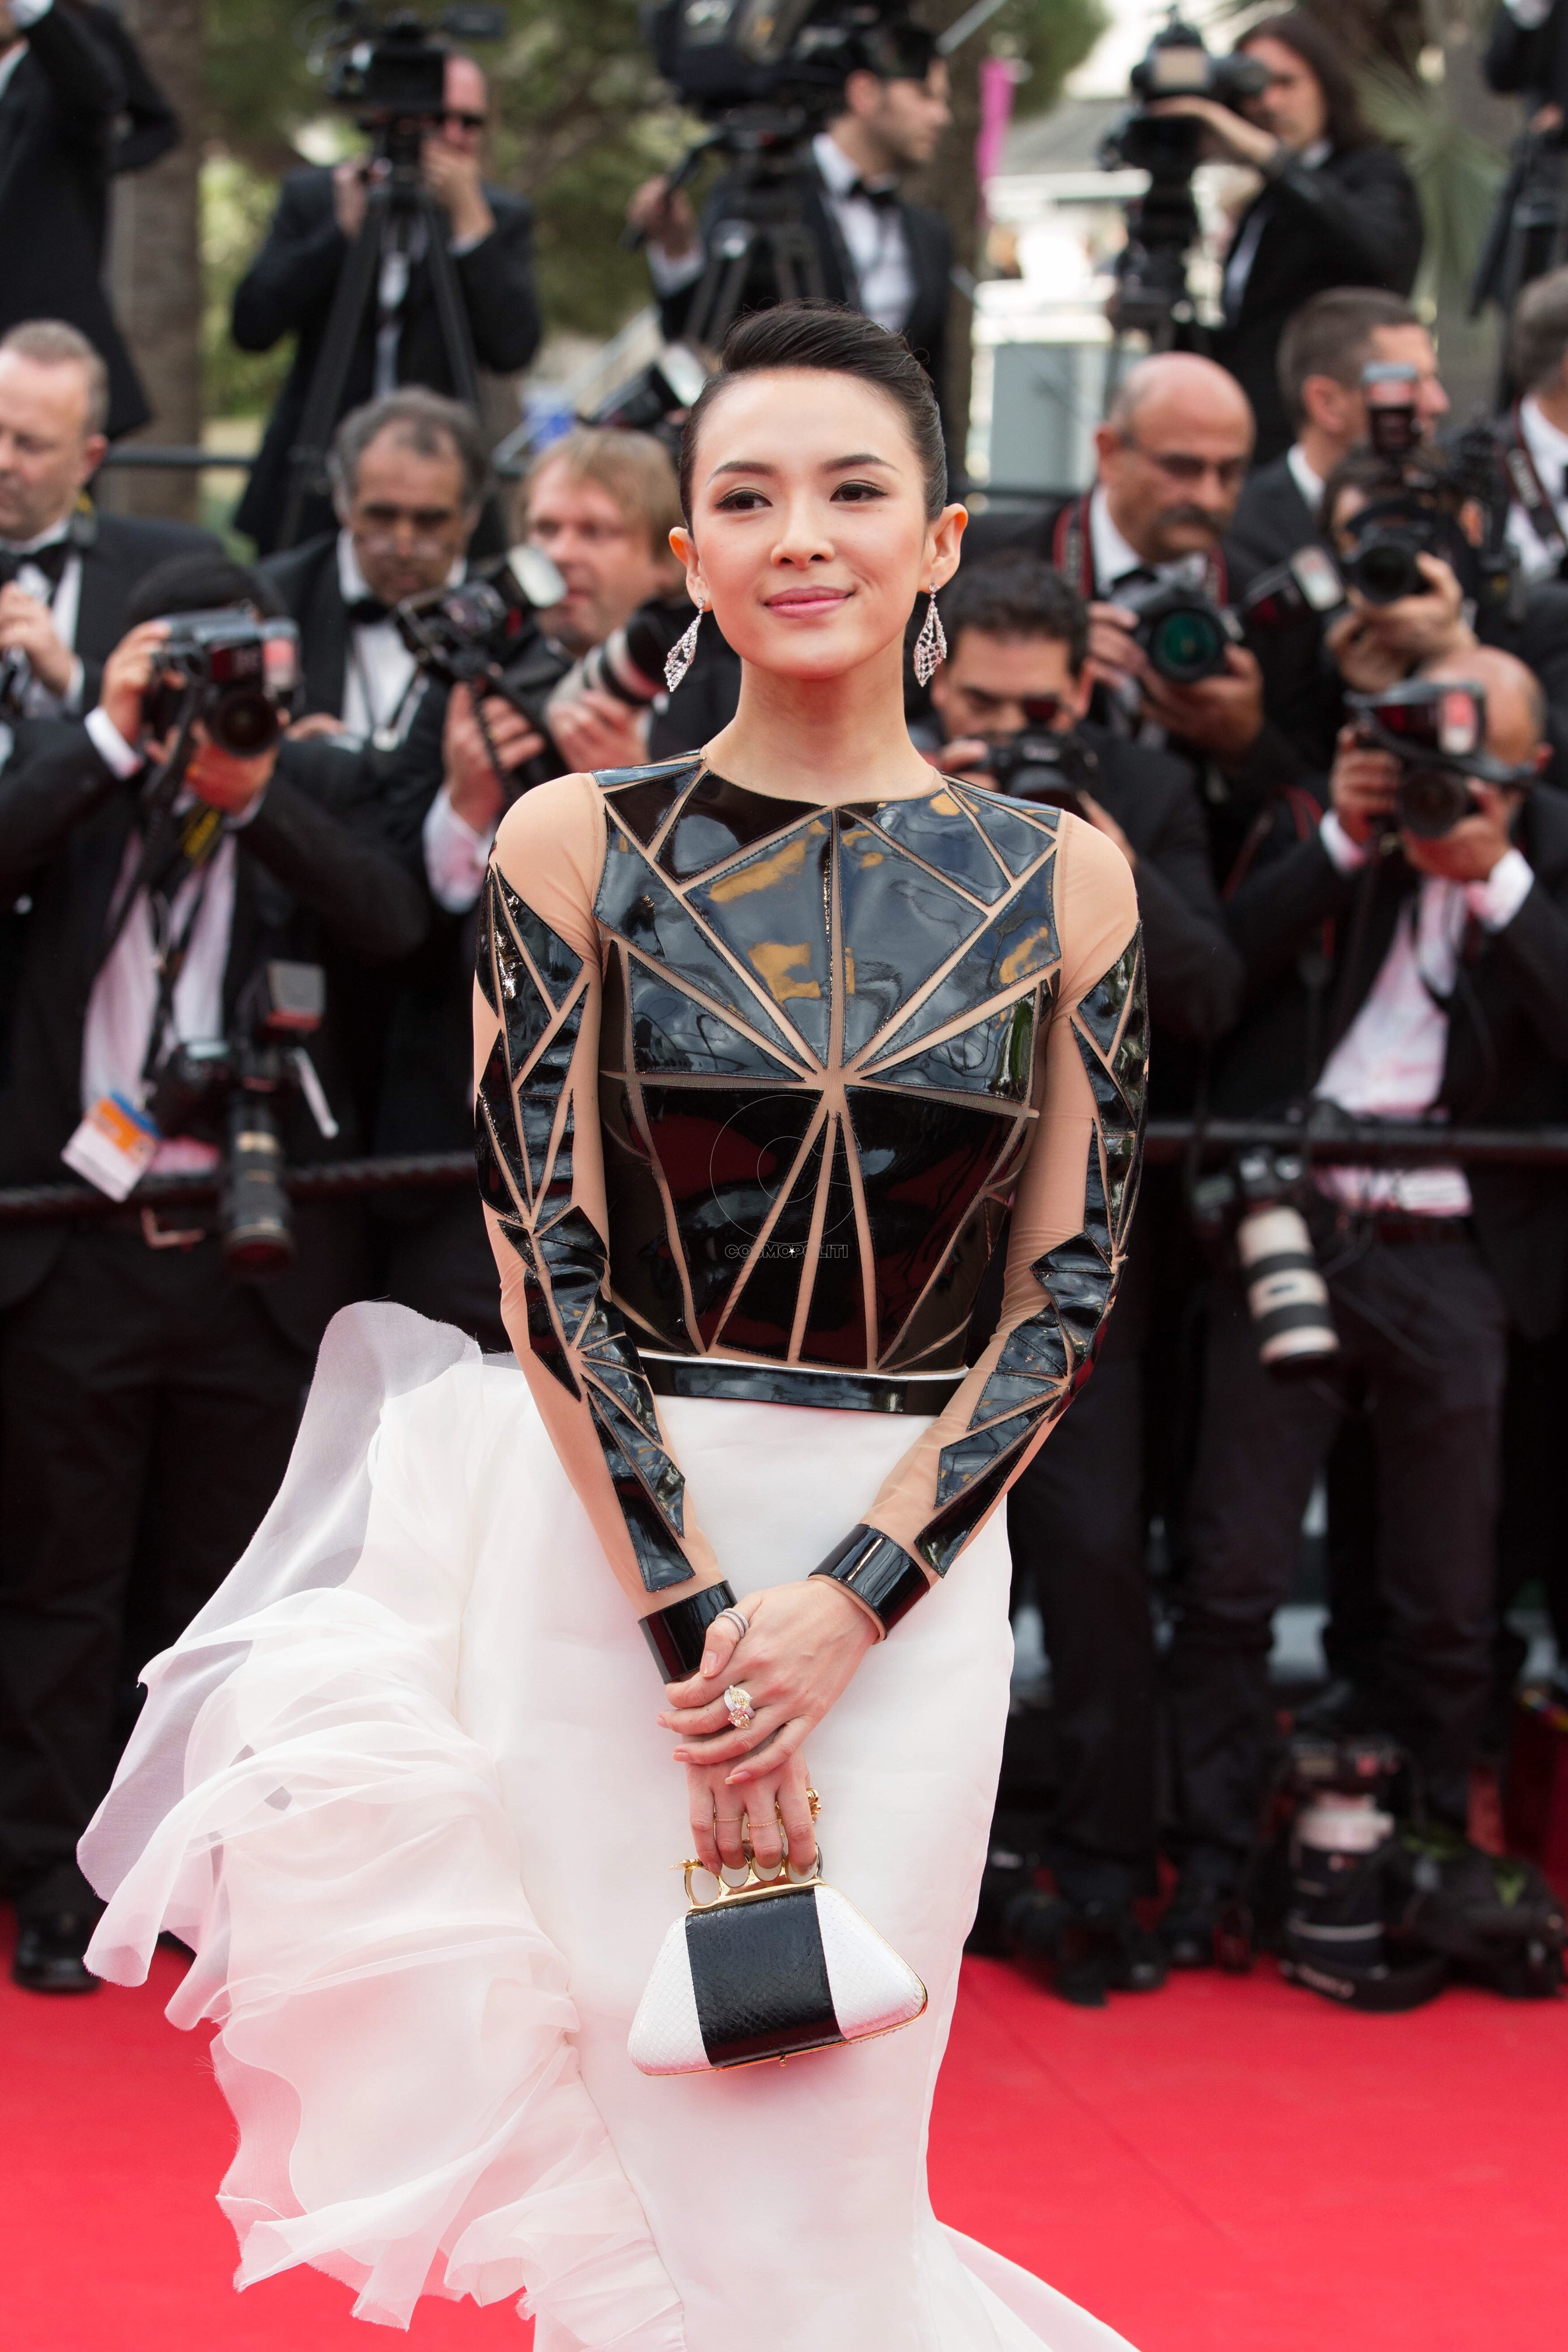 Zhang Ziyi in Chopard on the red carpet of the 67th Cannes Film Festival